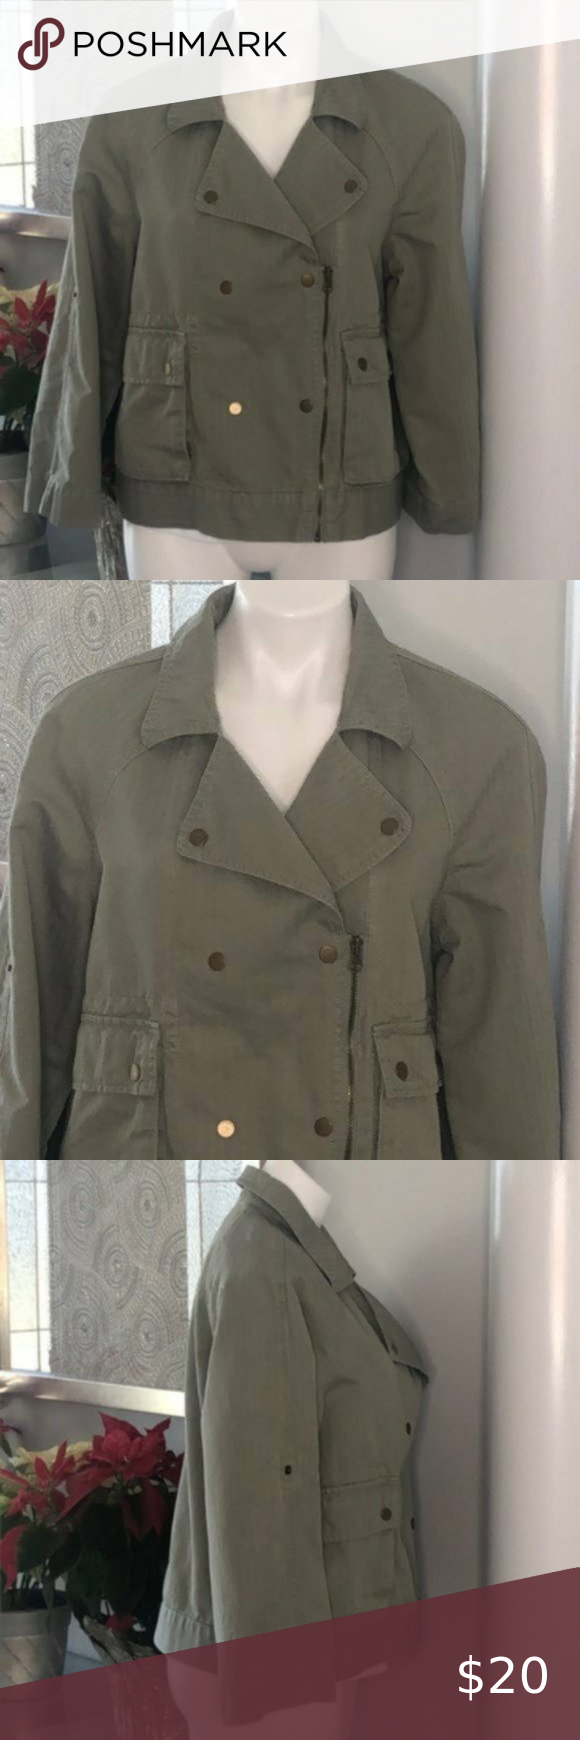 """LOFT Green Utility Linen Blend Moto Jacket, Size M This LOFT moto jacket features an olive body, zipper and button closure, two front fold pockets, two side pockets, roll-tab sleeves and collared neckline. Size: M Measurements laying flat (approximate): *Chest: 21"""" *Length: 22"""" Condition: Preowned. Excellent used condition. Smoke-free, pet-friendly home. (W10813) LOFT Jackets & Coats"""